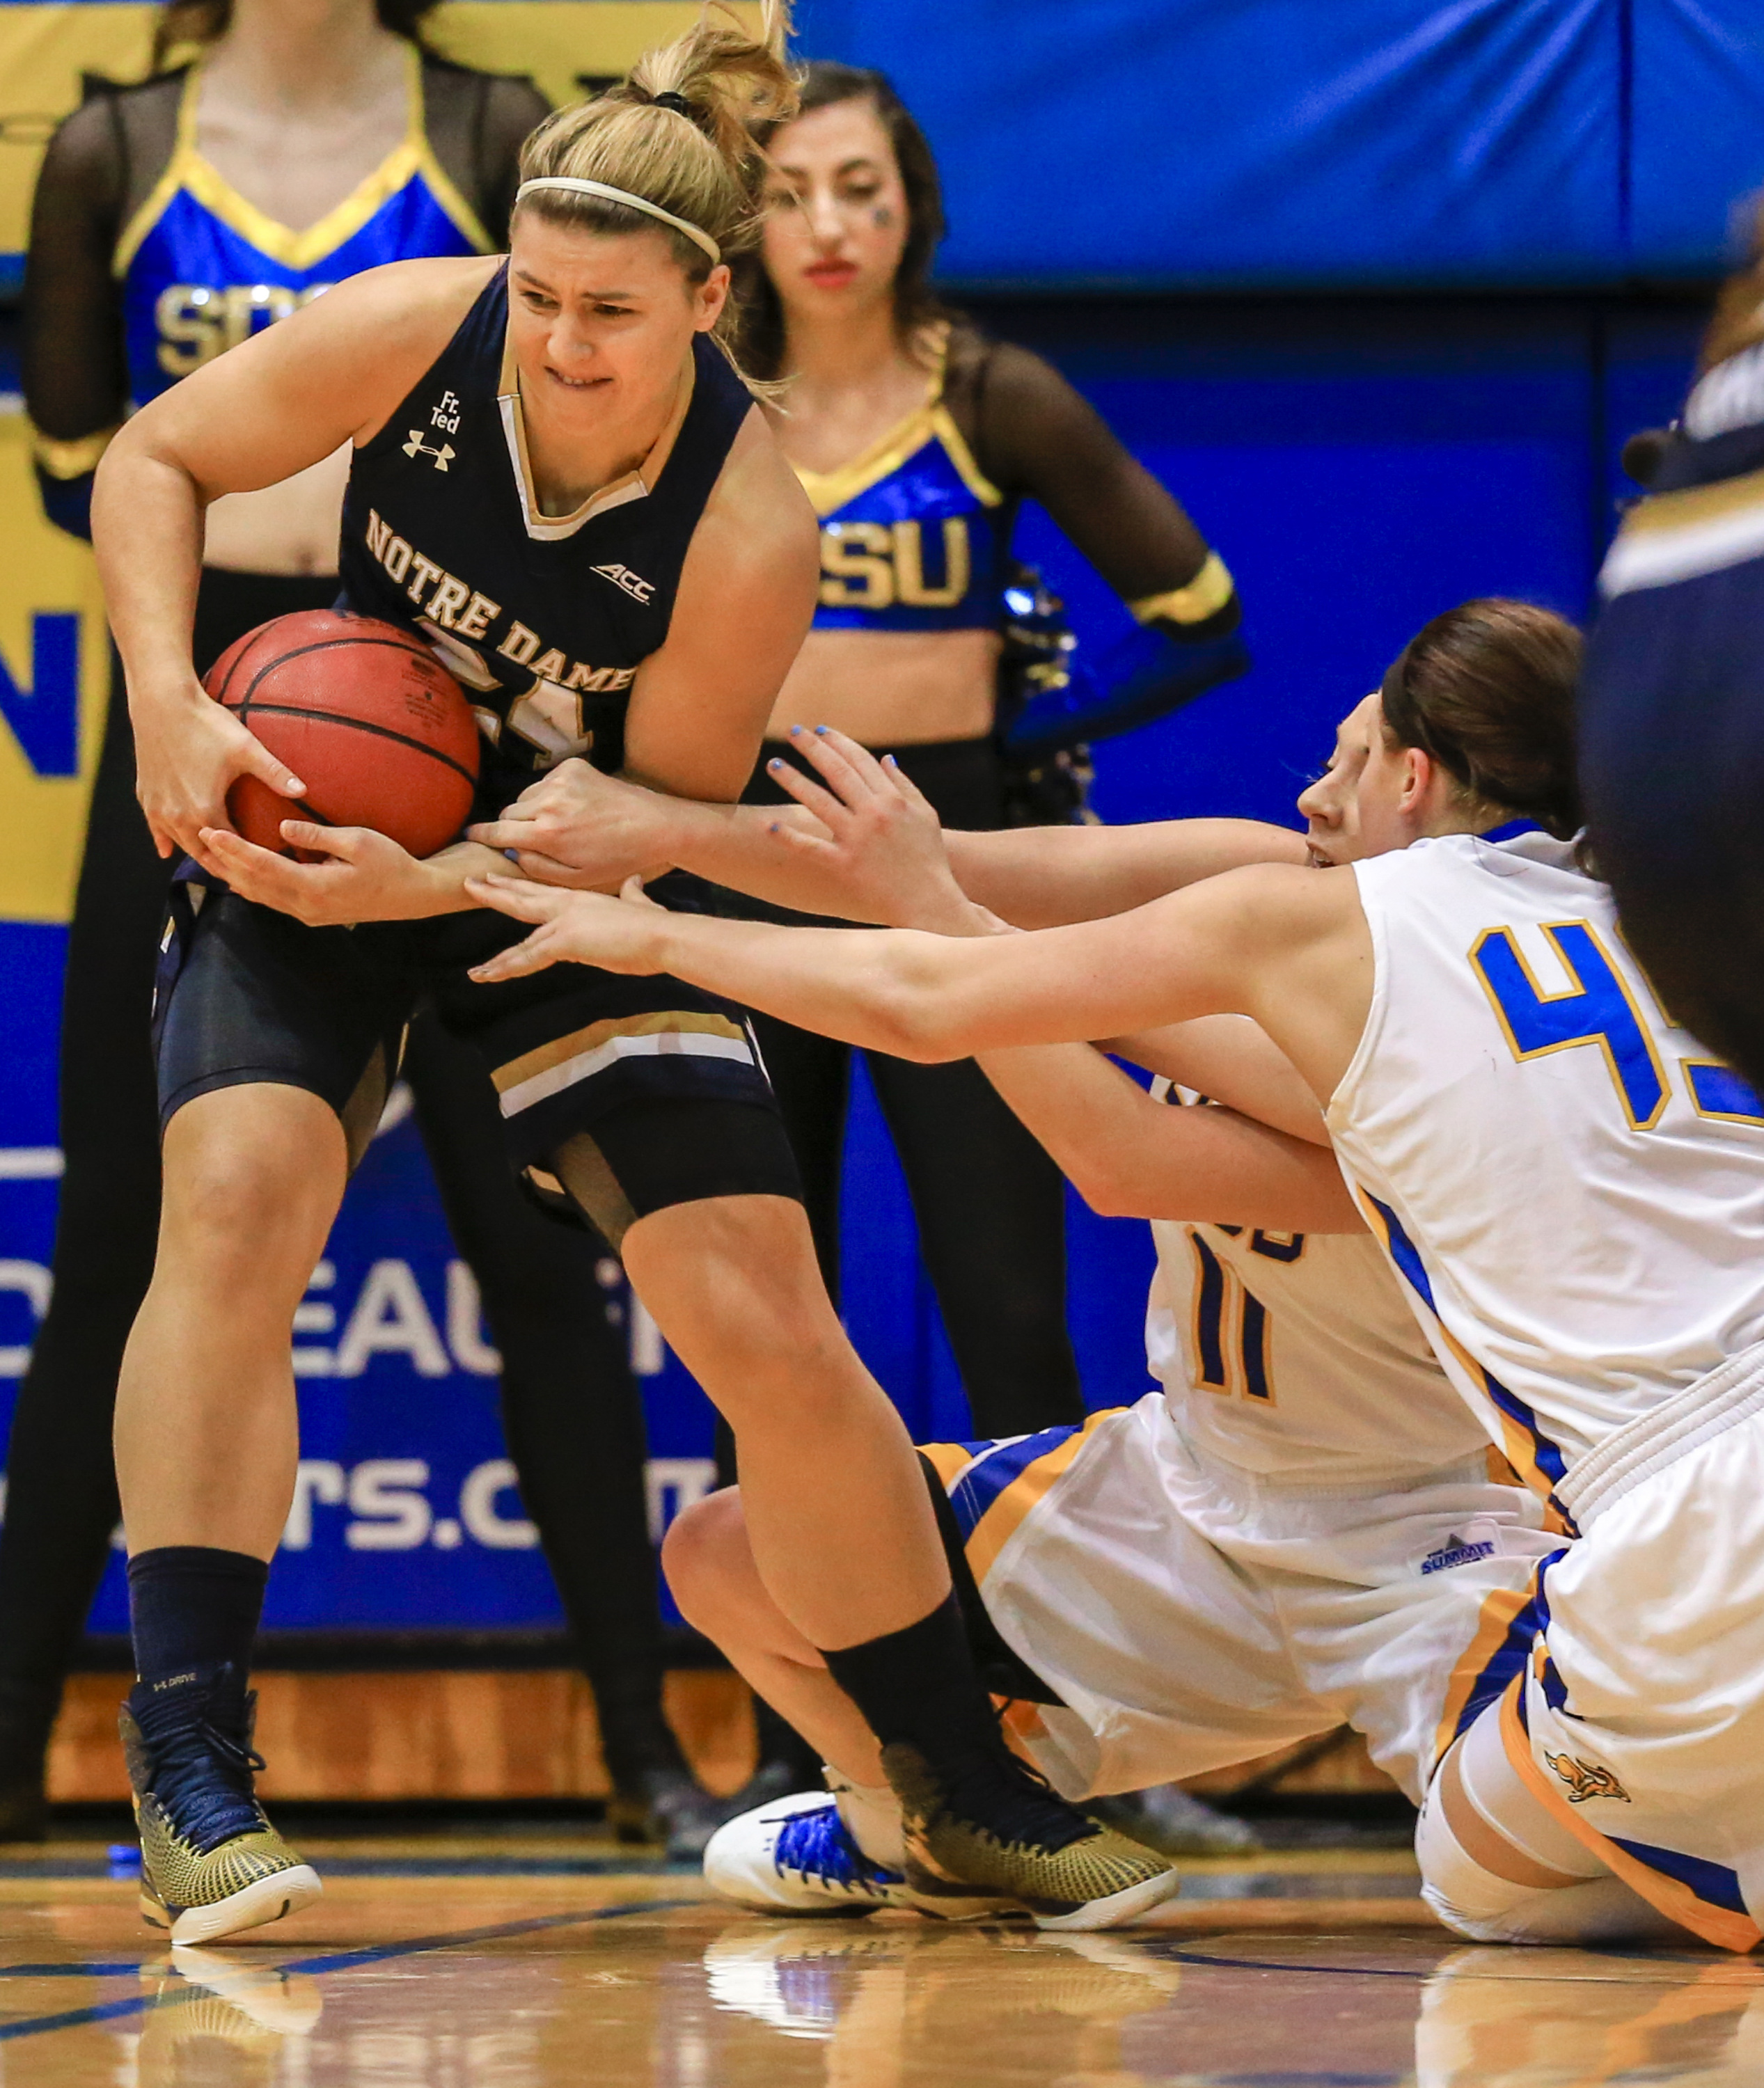 Notre Dame guard Hannah Huffman (24) grabsthe ball away from South Dakota State guard Gabrielle Boever (4)5 and Madison Guebert (11) during the first half of an NCAA college basketball game in Brookings, S.D., Saturday, Nov. 21, 2015. (AP Photo/Nati Harni